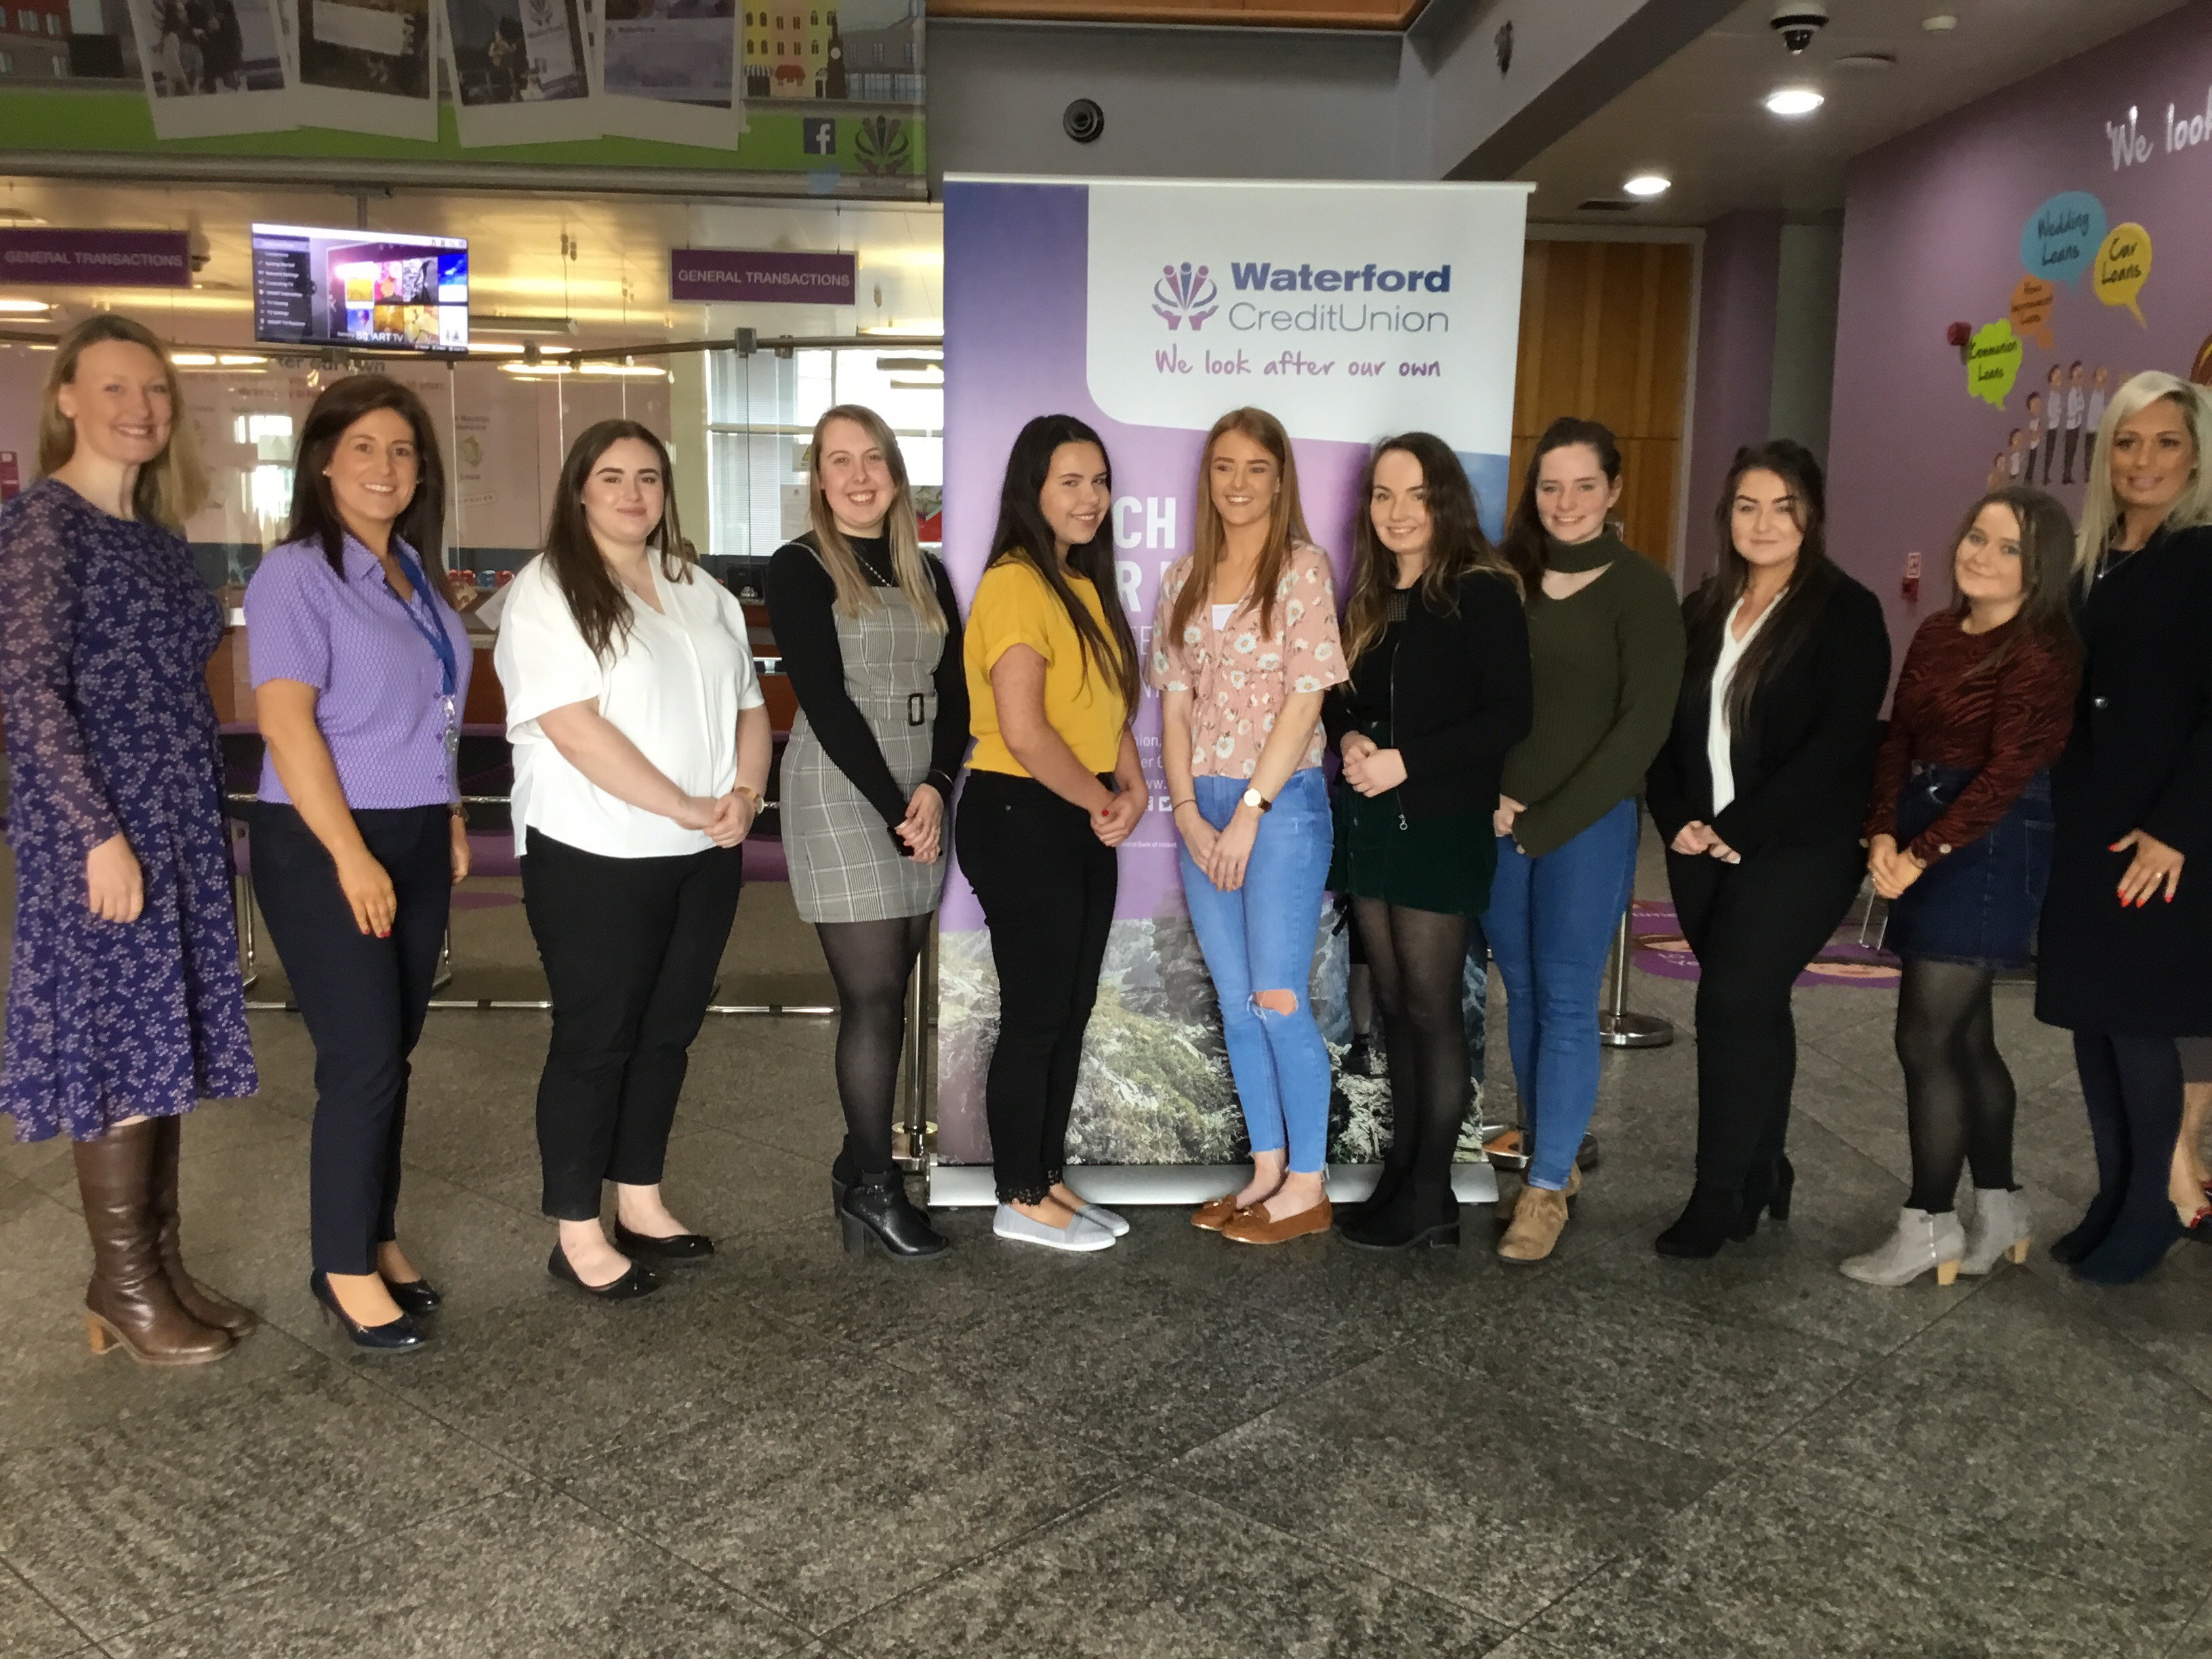 From left are: Sinead O'Keeffe (Lecturer, WIT) Ann-Marie Drohan (Marketing Manager, Waterford Credit Union) Niamh Whitty (WIT) Georgina Conroy (WIT Winner) Lauren Organ (WIT) Niamh Teat (WIT) Emma O'Connell (WIT) Georgia English (WIT) Shannon Keohan (WIT) Rebecca Long (WIT) Jen Power (Waterford Credit Union)